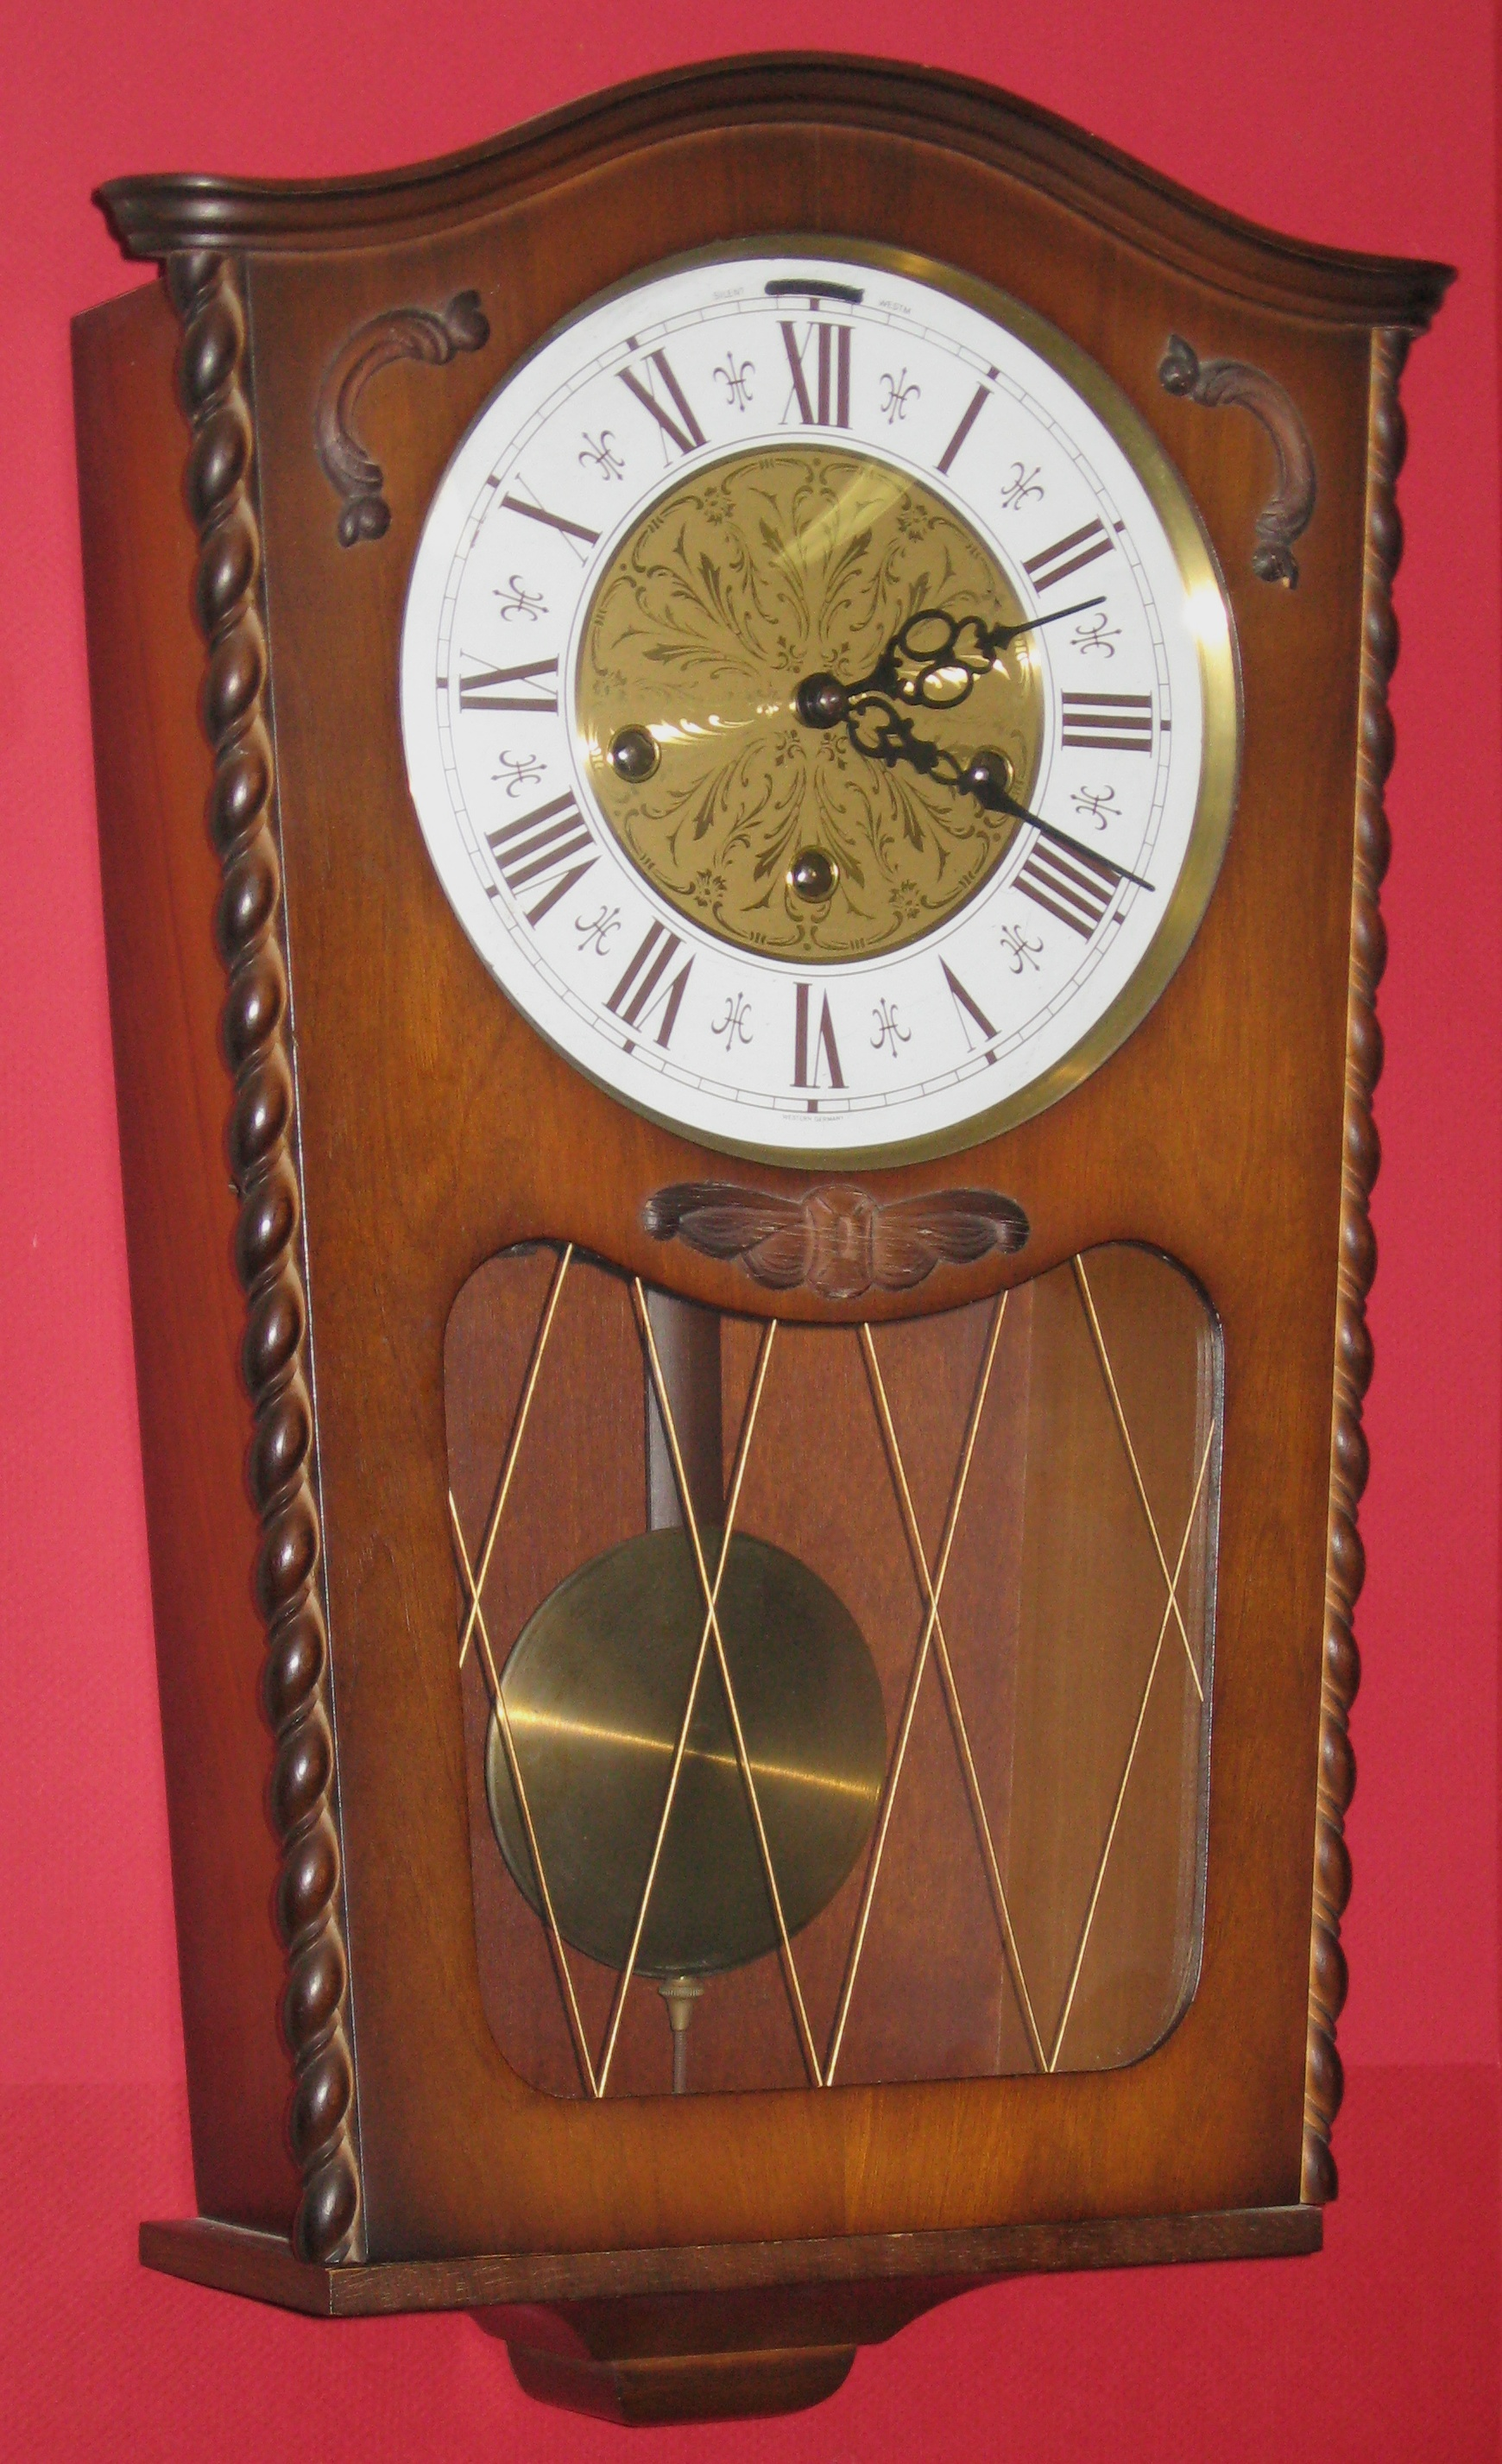 westminster chime wall clock manual